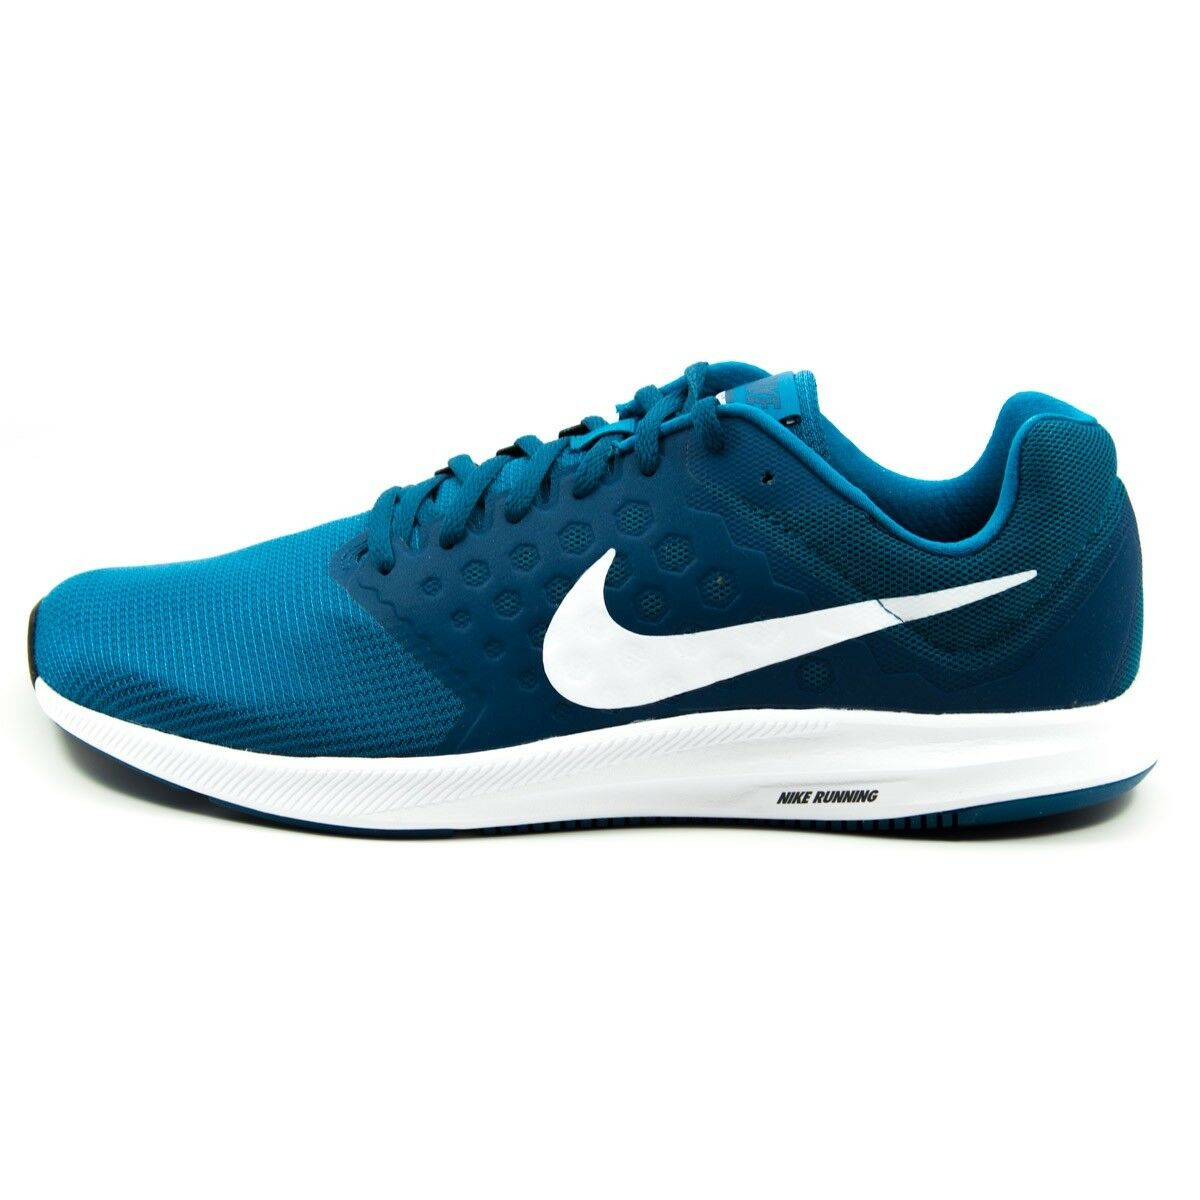 2018 Homme NIKE DOWNSHIFTER 7 Taille 13 NEW 852459 301